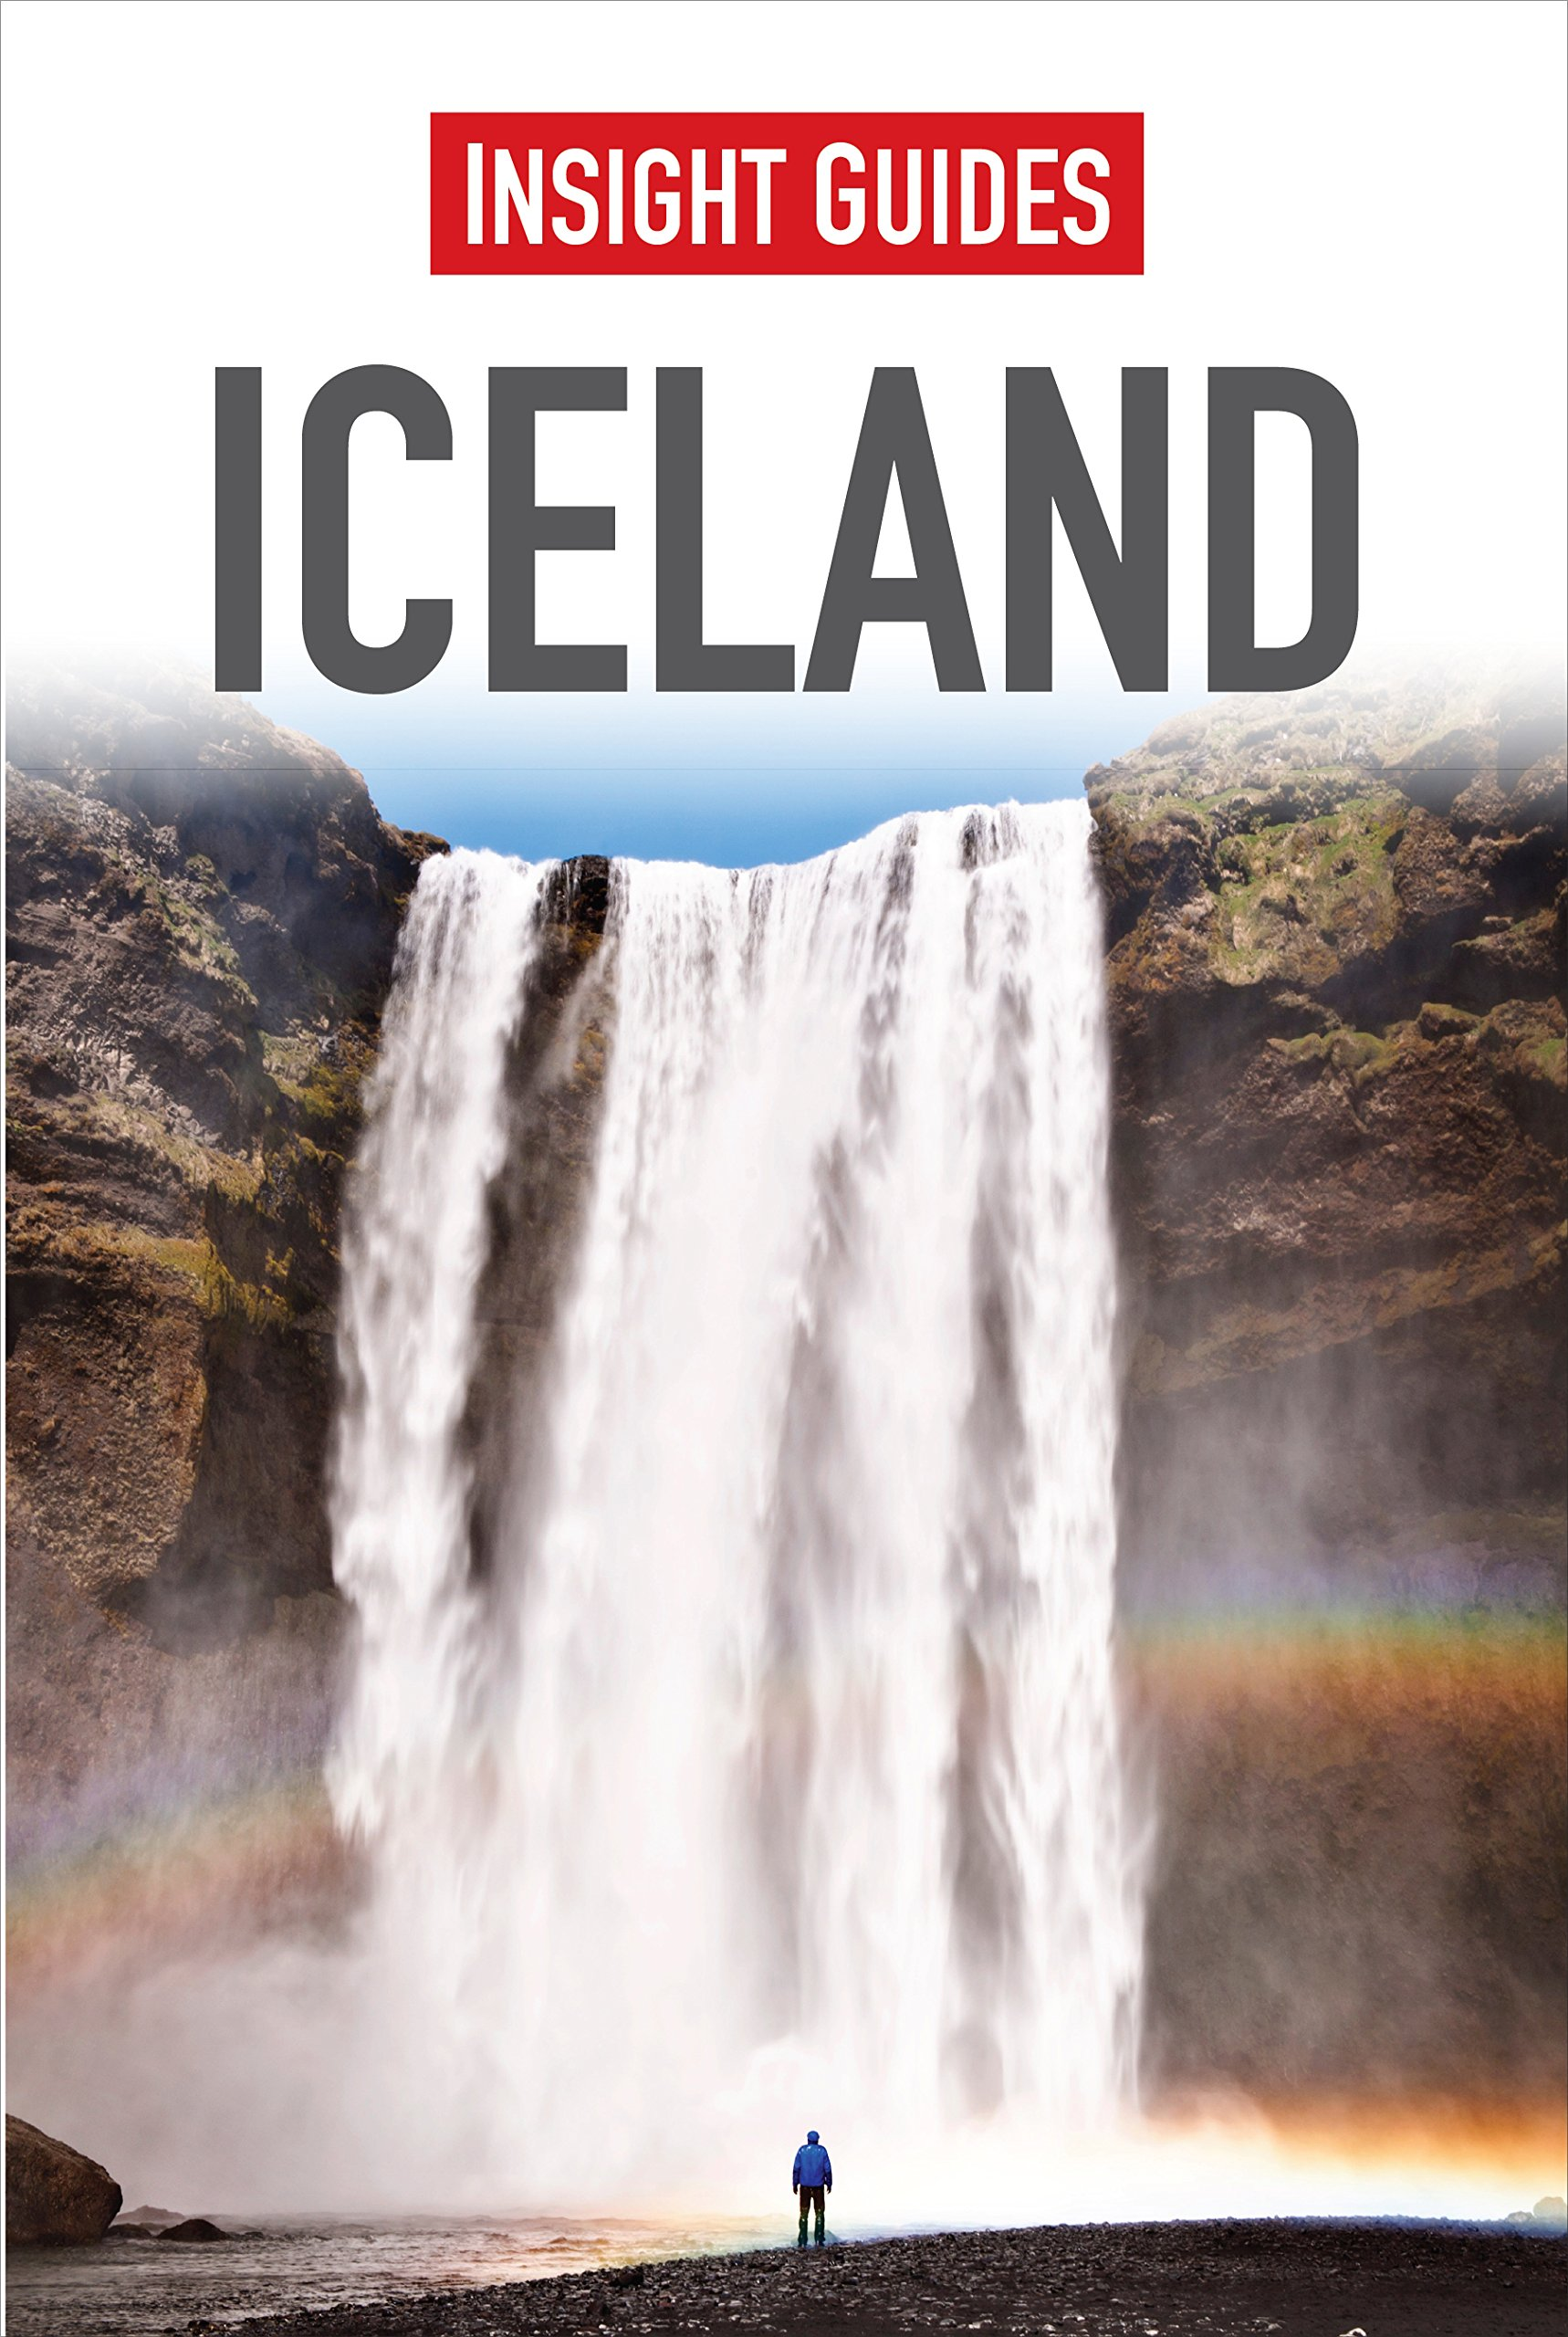 Iceland (Insight Guides) Paperback – April 1, 2014 1780052251 Iceland; Guidebooks. Travel Travel - Foreign